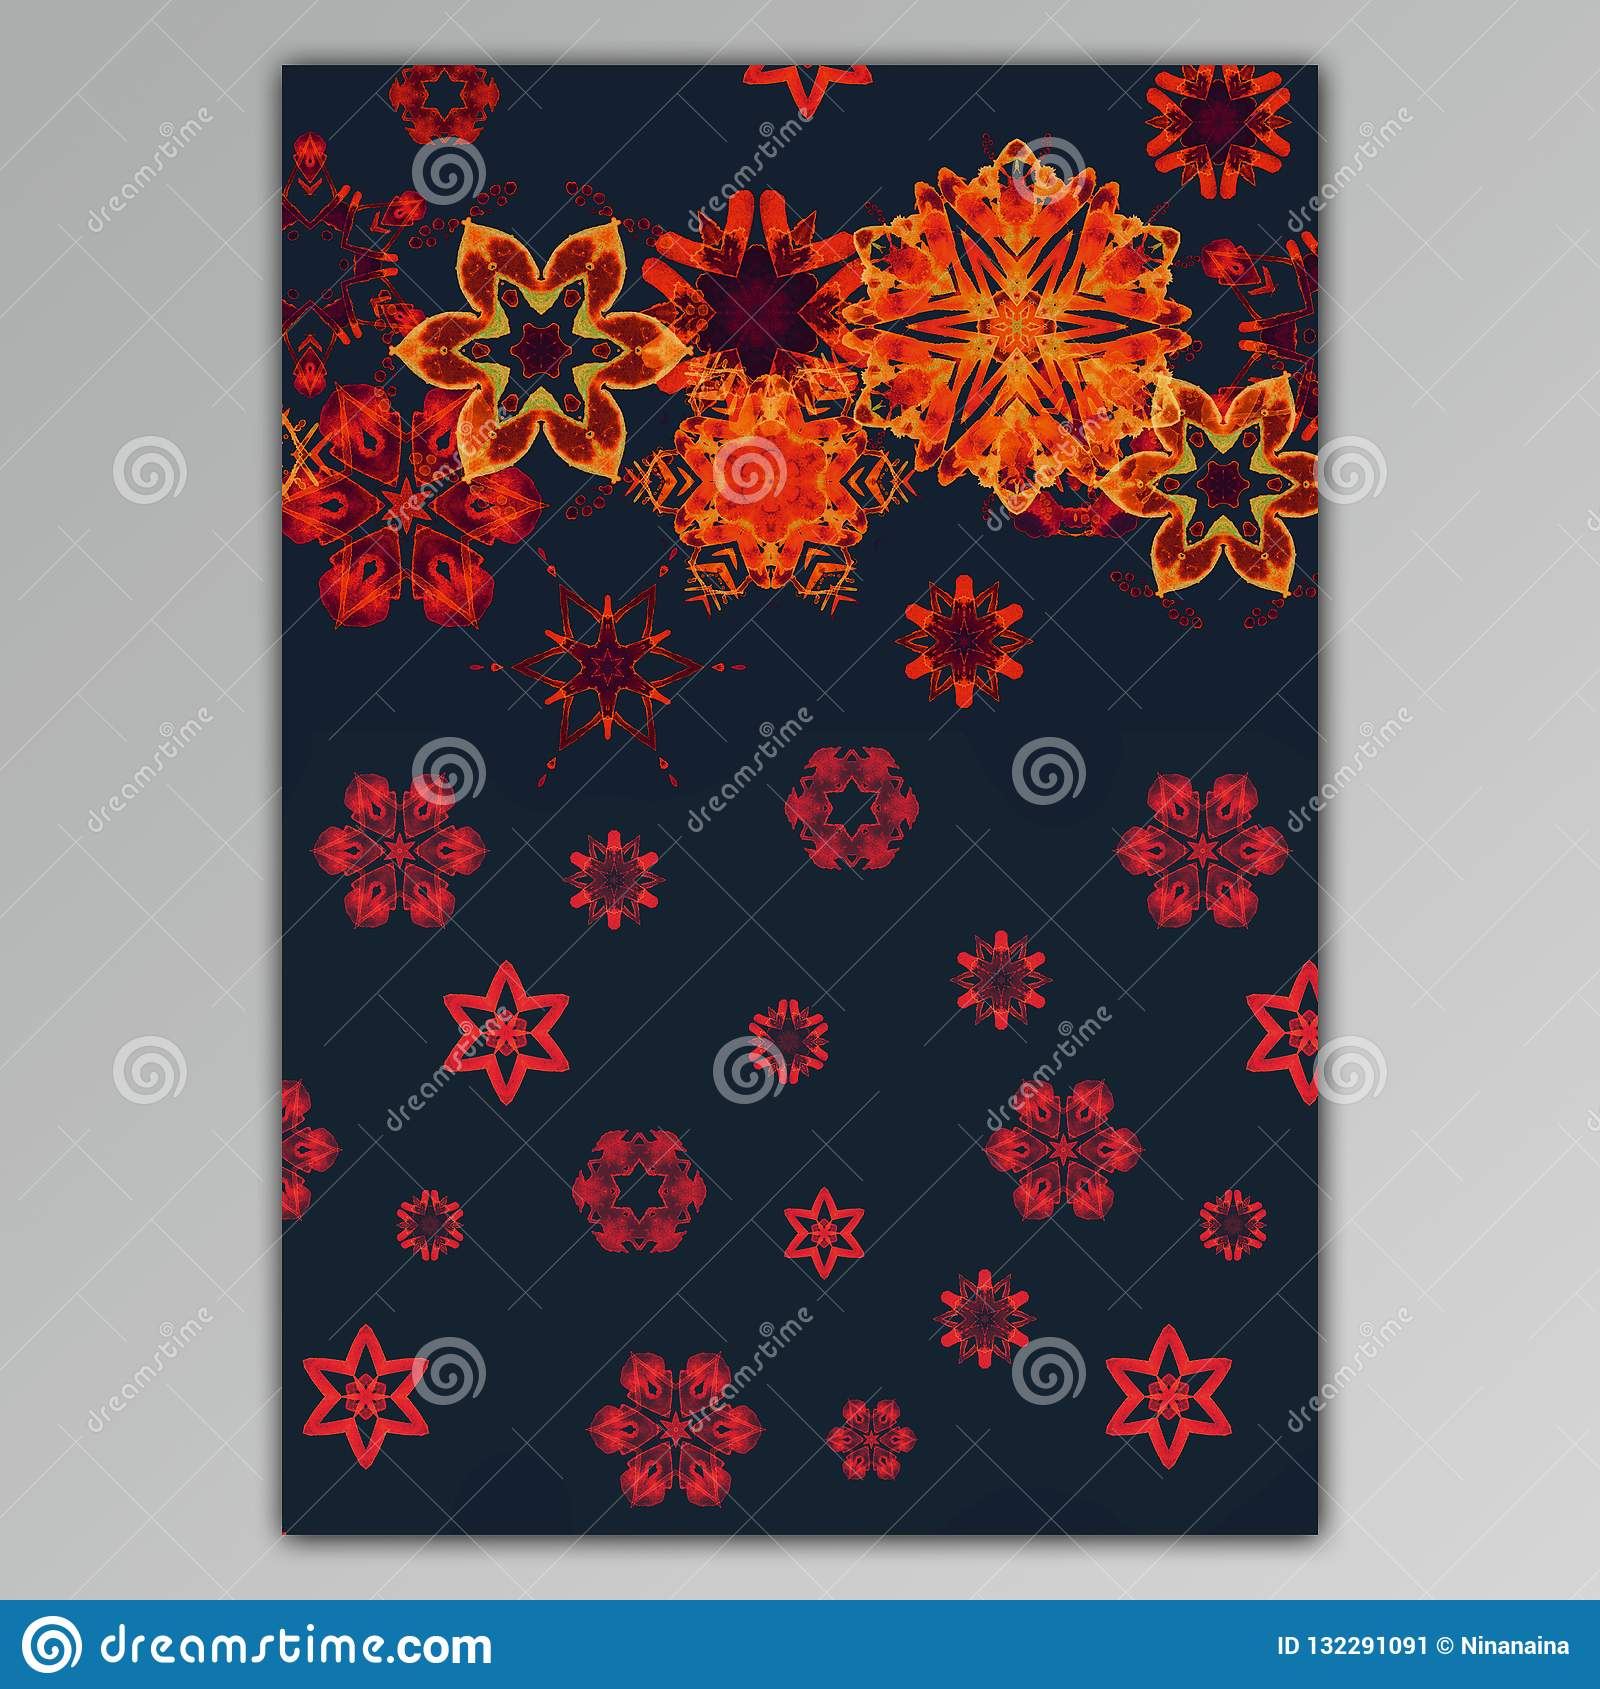 Greeting Card With Hand Paint Watercolor Snowflakes Stock Illustration Illustration Of Christmas Card 132291091